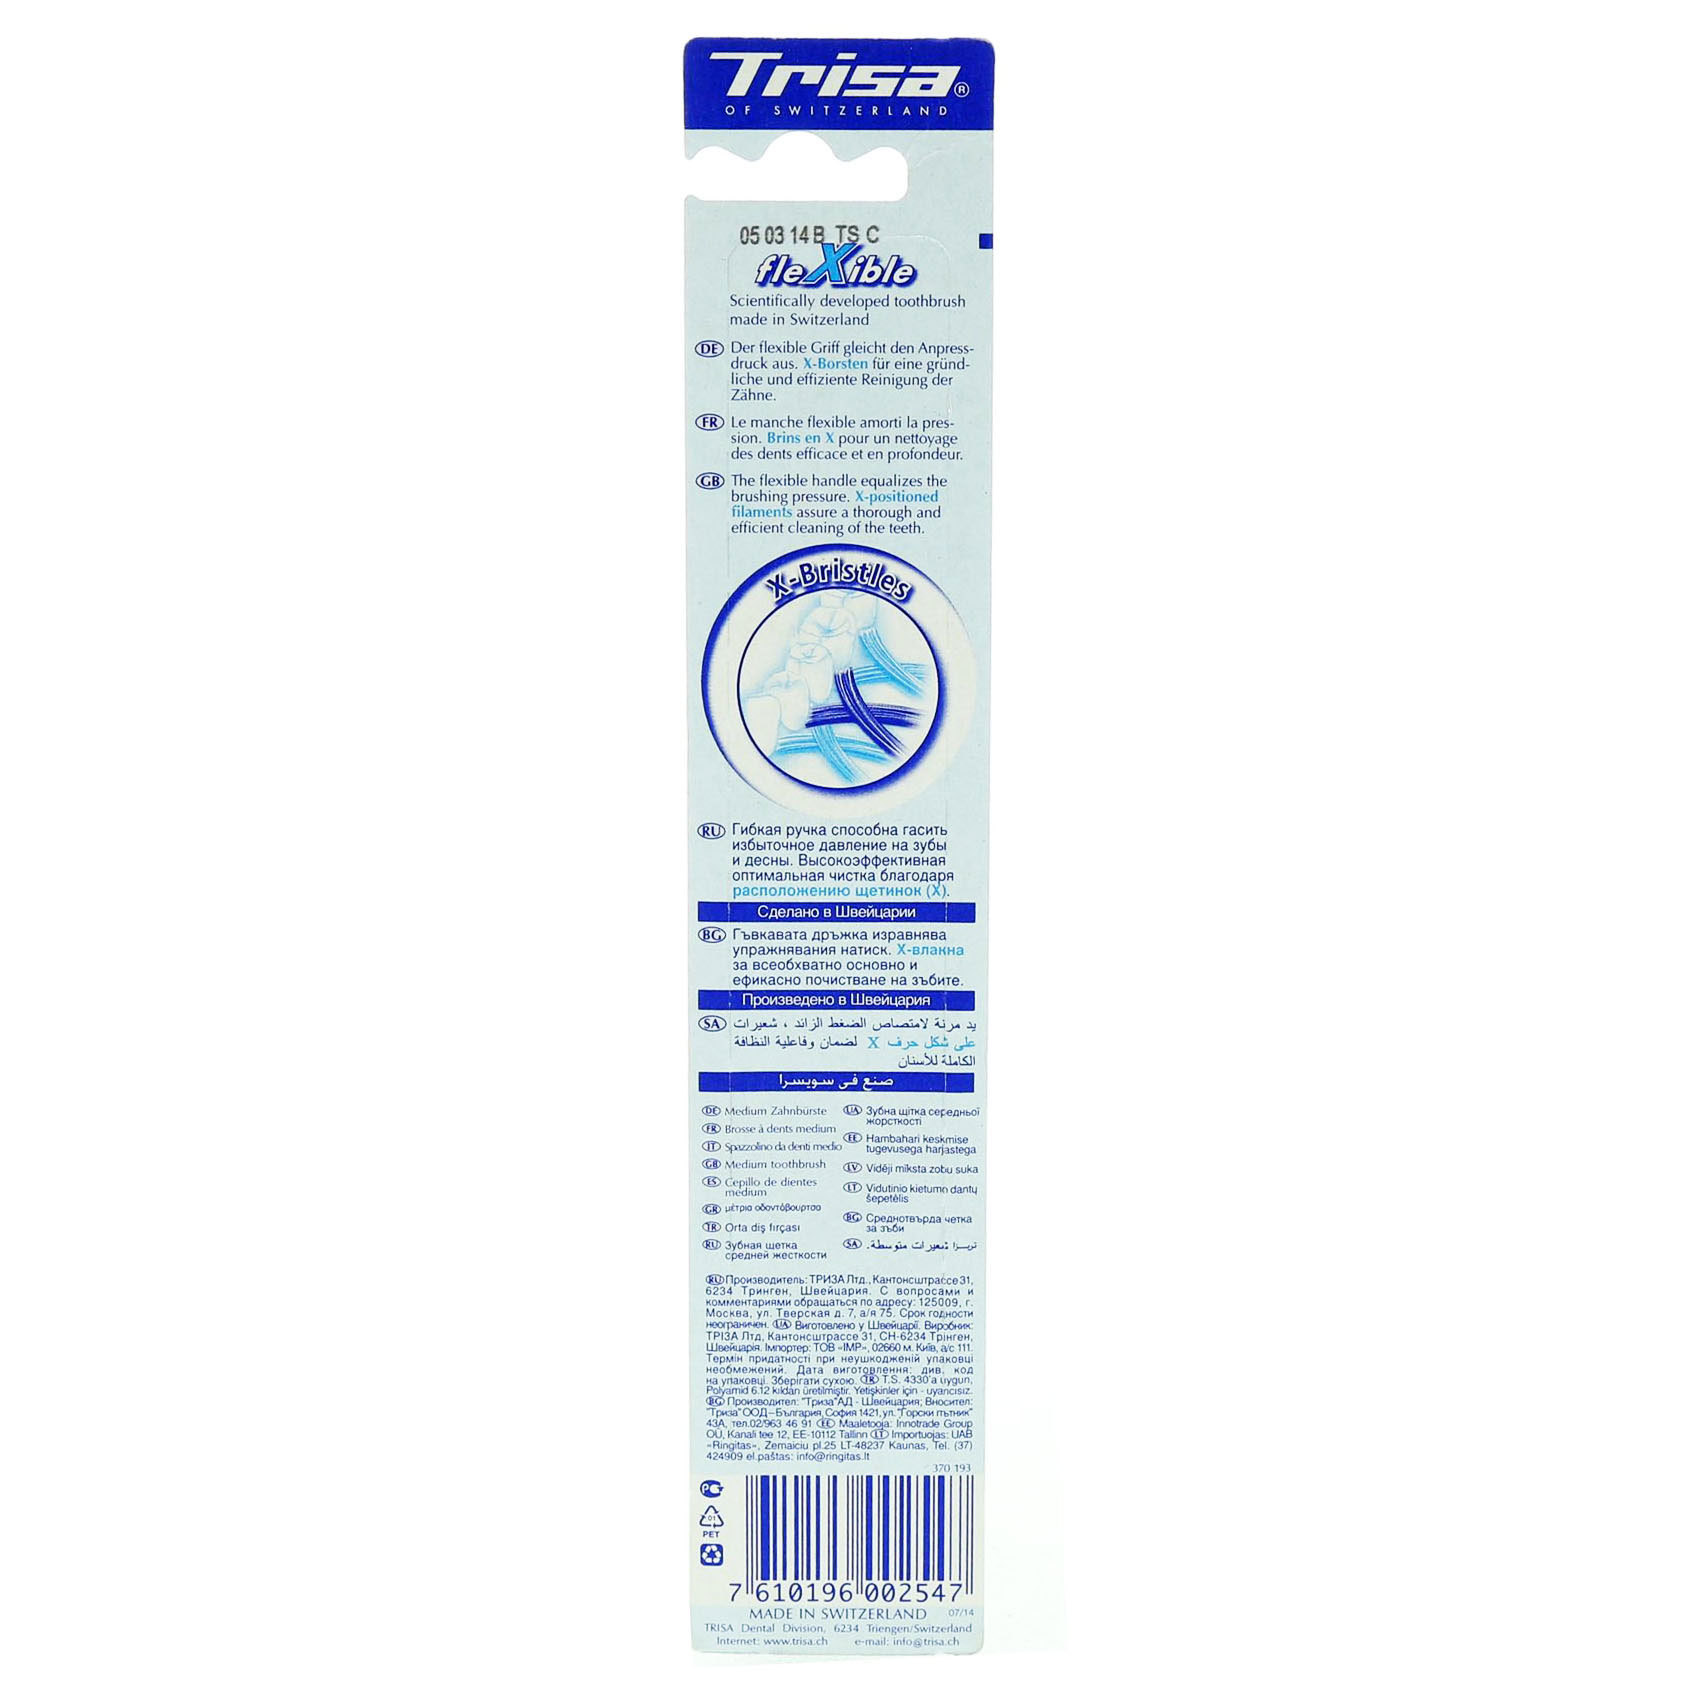 TRISA T/BRUSH FLEX ACTIVE MED